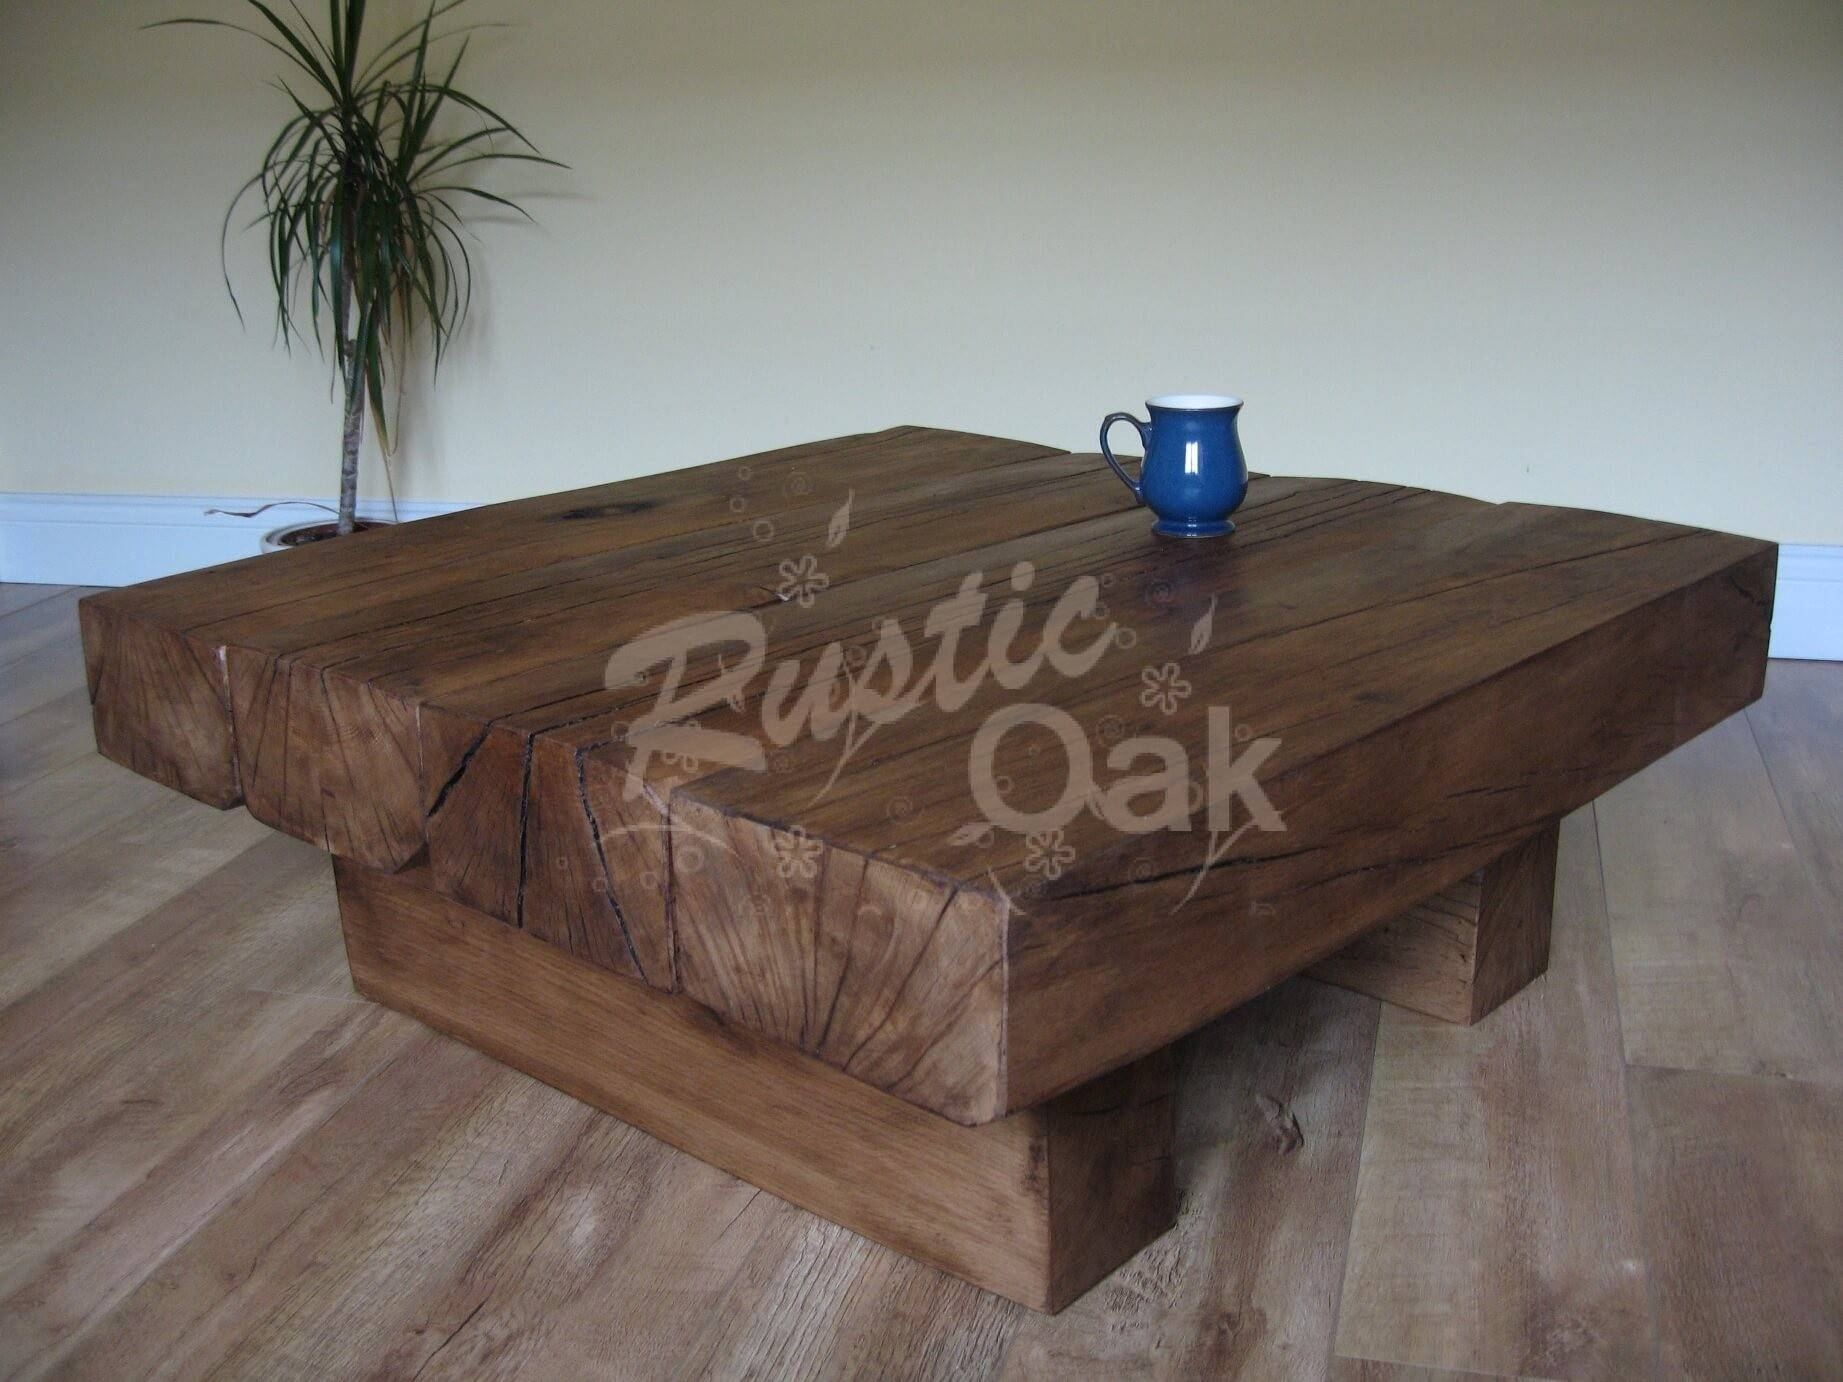 4 Beam Square Coffee Table - Rustic Oak pertaining to Square Coffee Table Oak (Image 1 of 15)